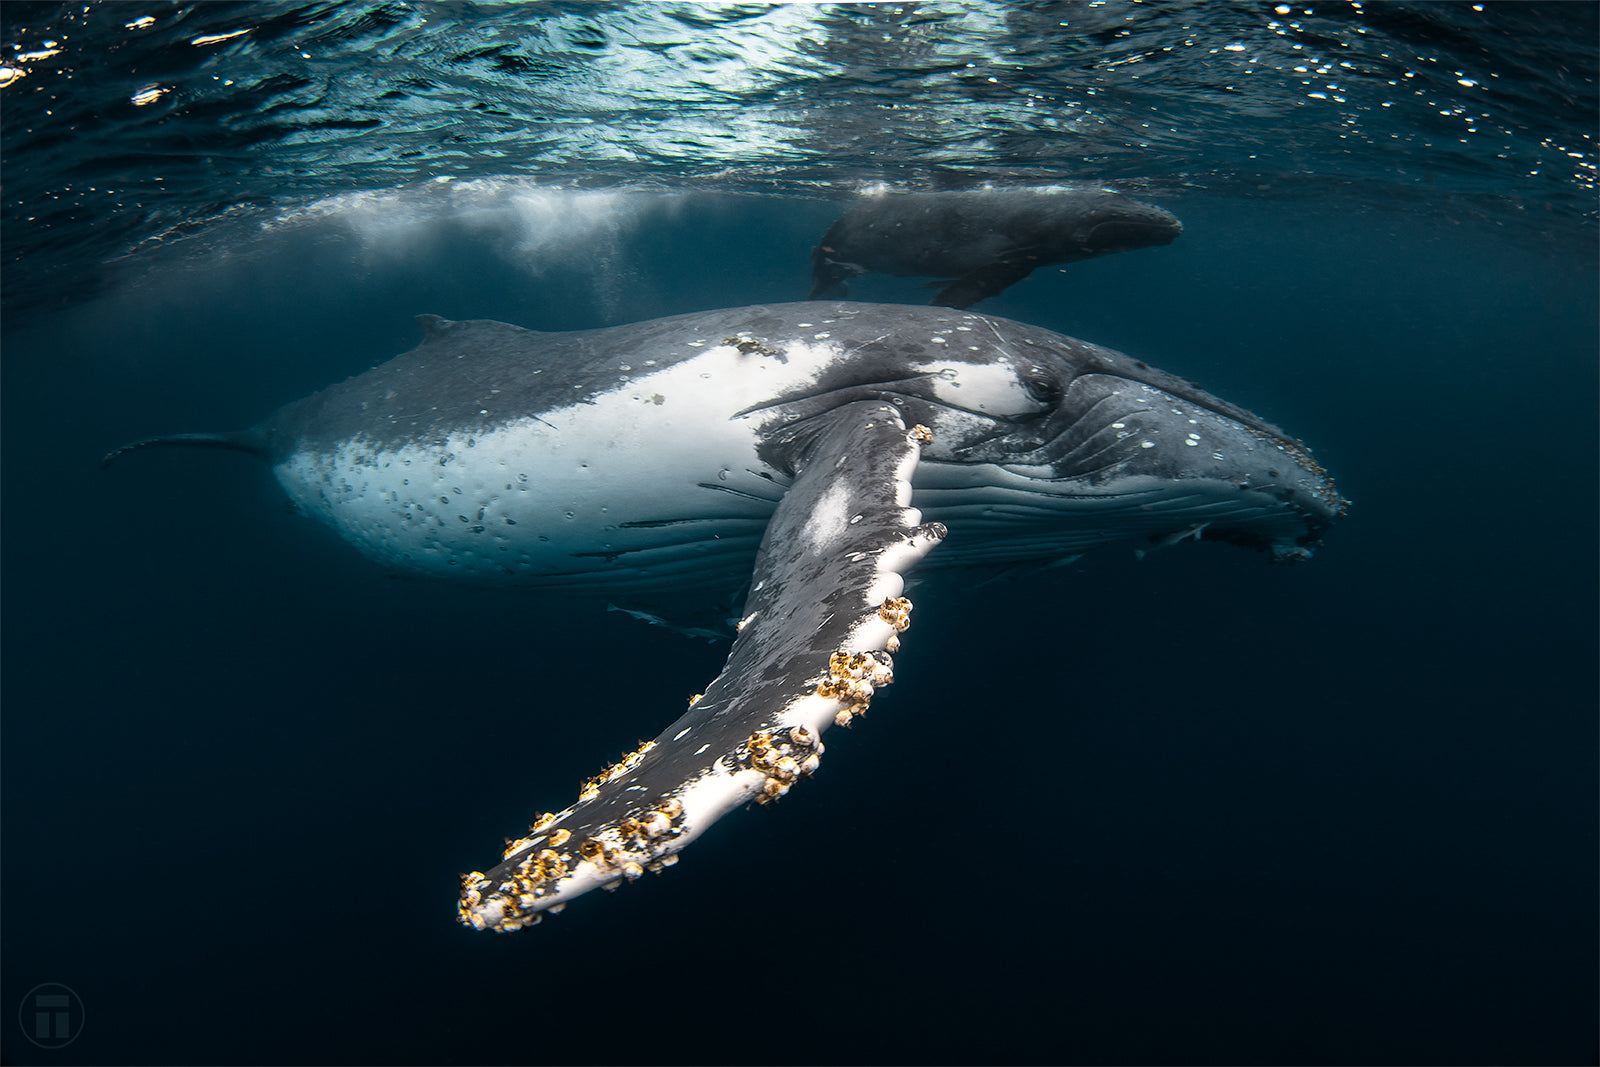 Getting close swimming with humpback whales in Tonga